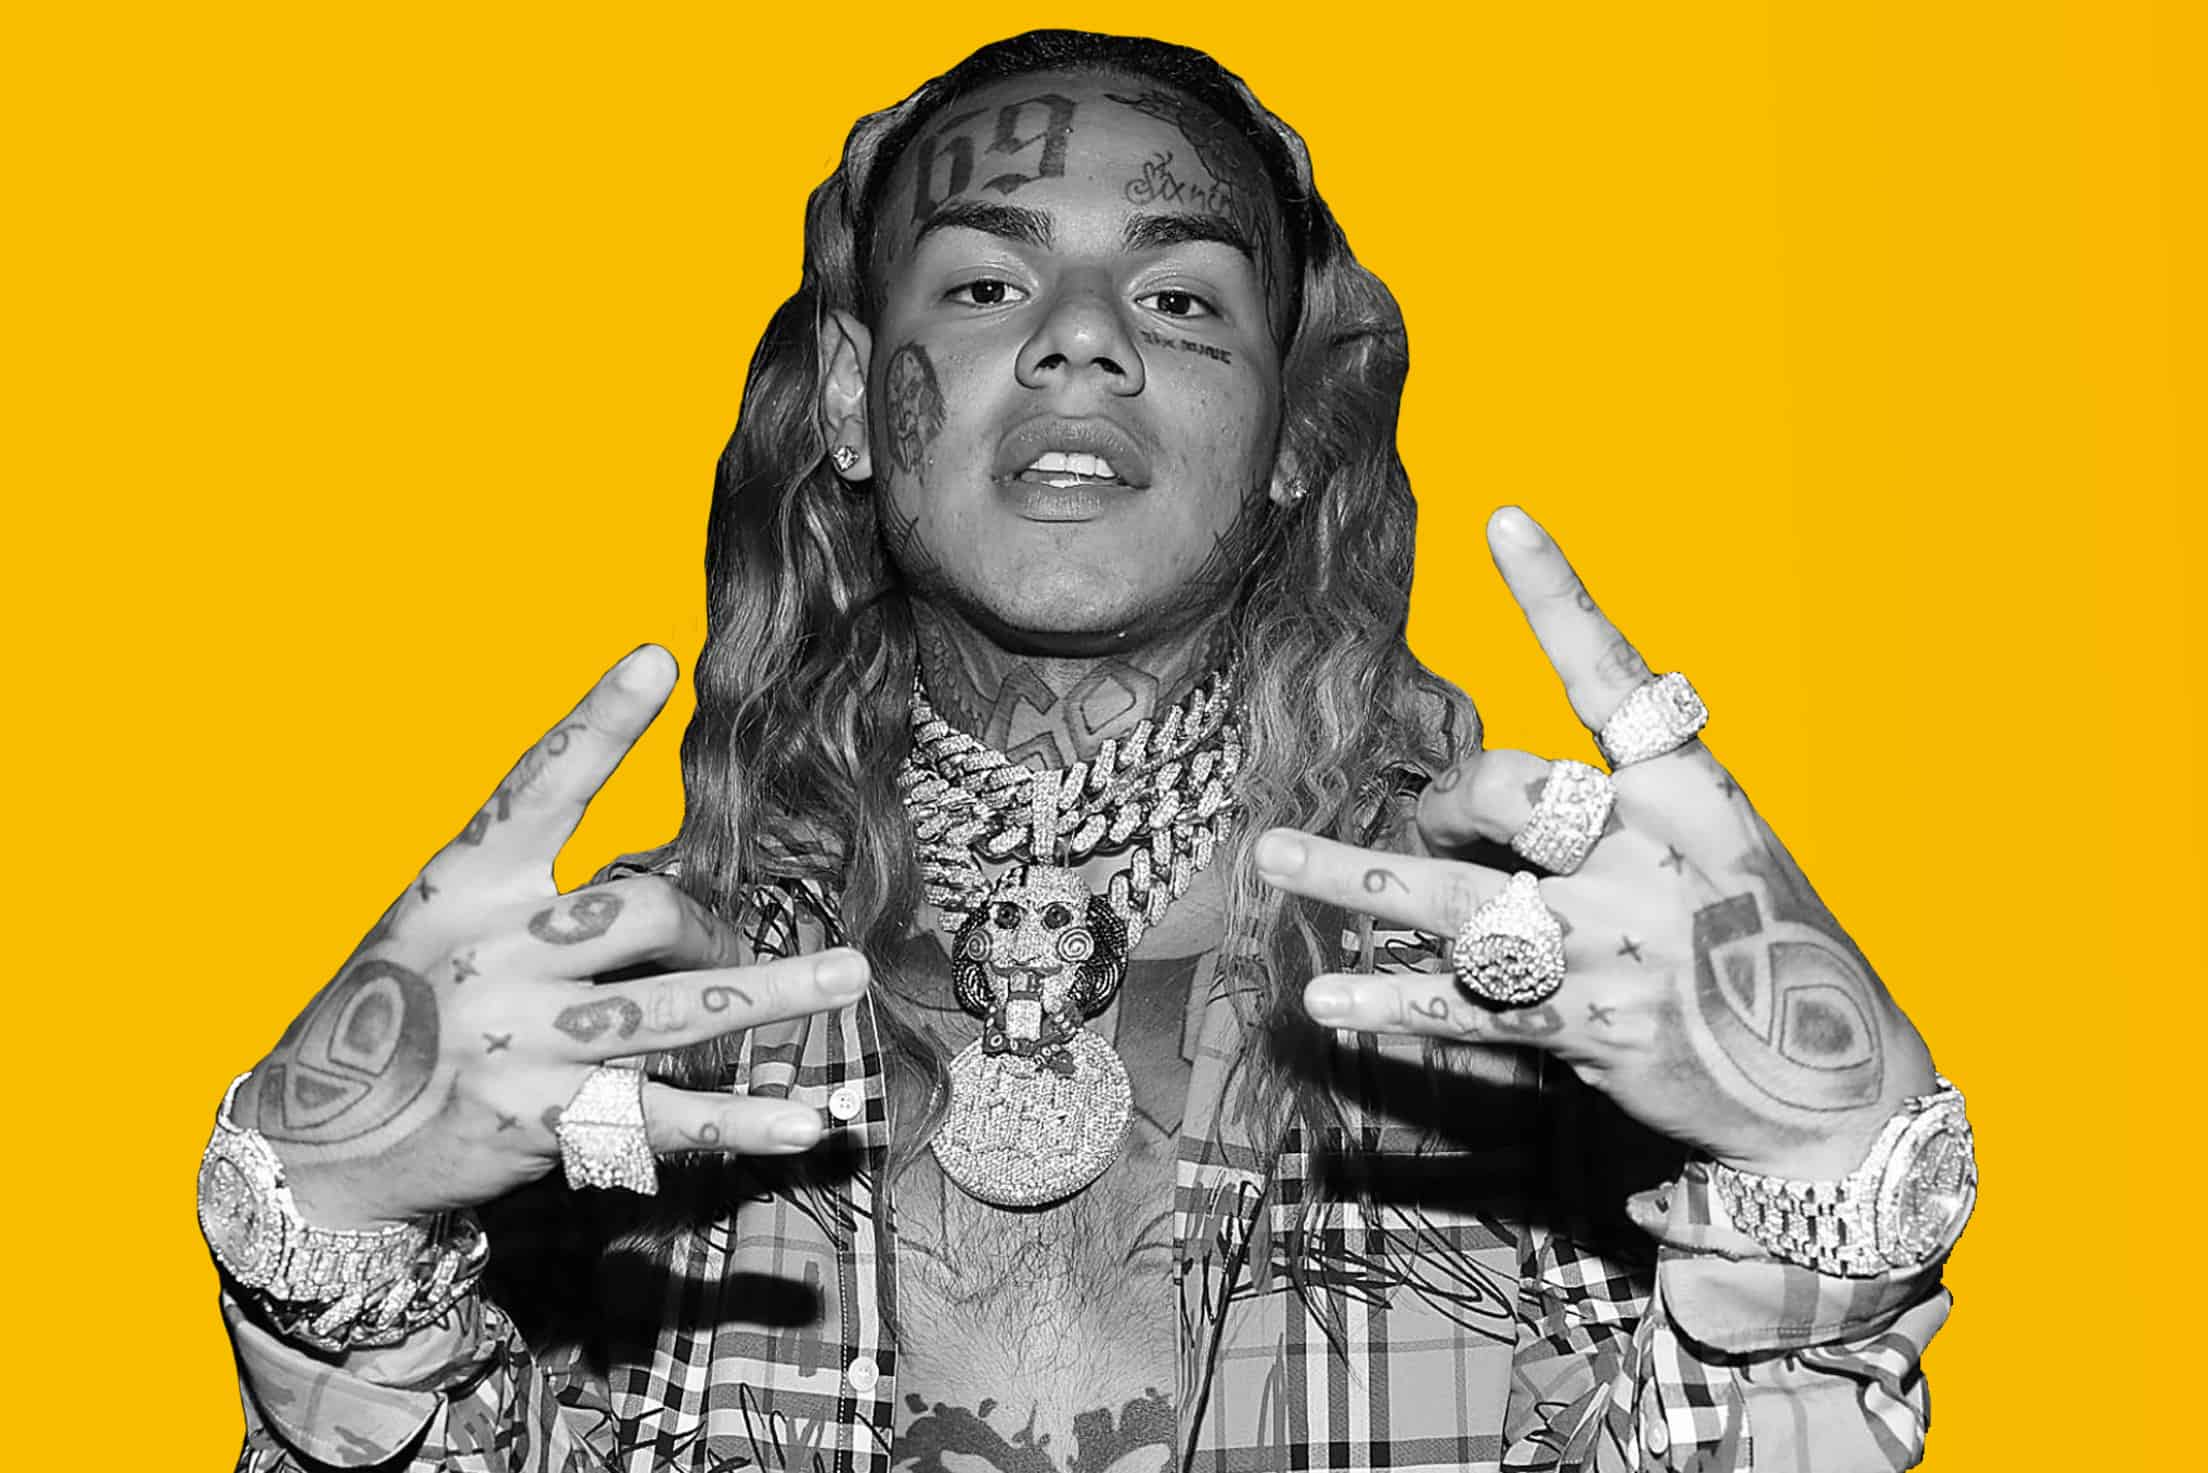 6ix9ine DROPPING NEW SONG 'YAYA', THIS IS THE BEST ONE I DID SO FAR